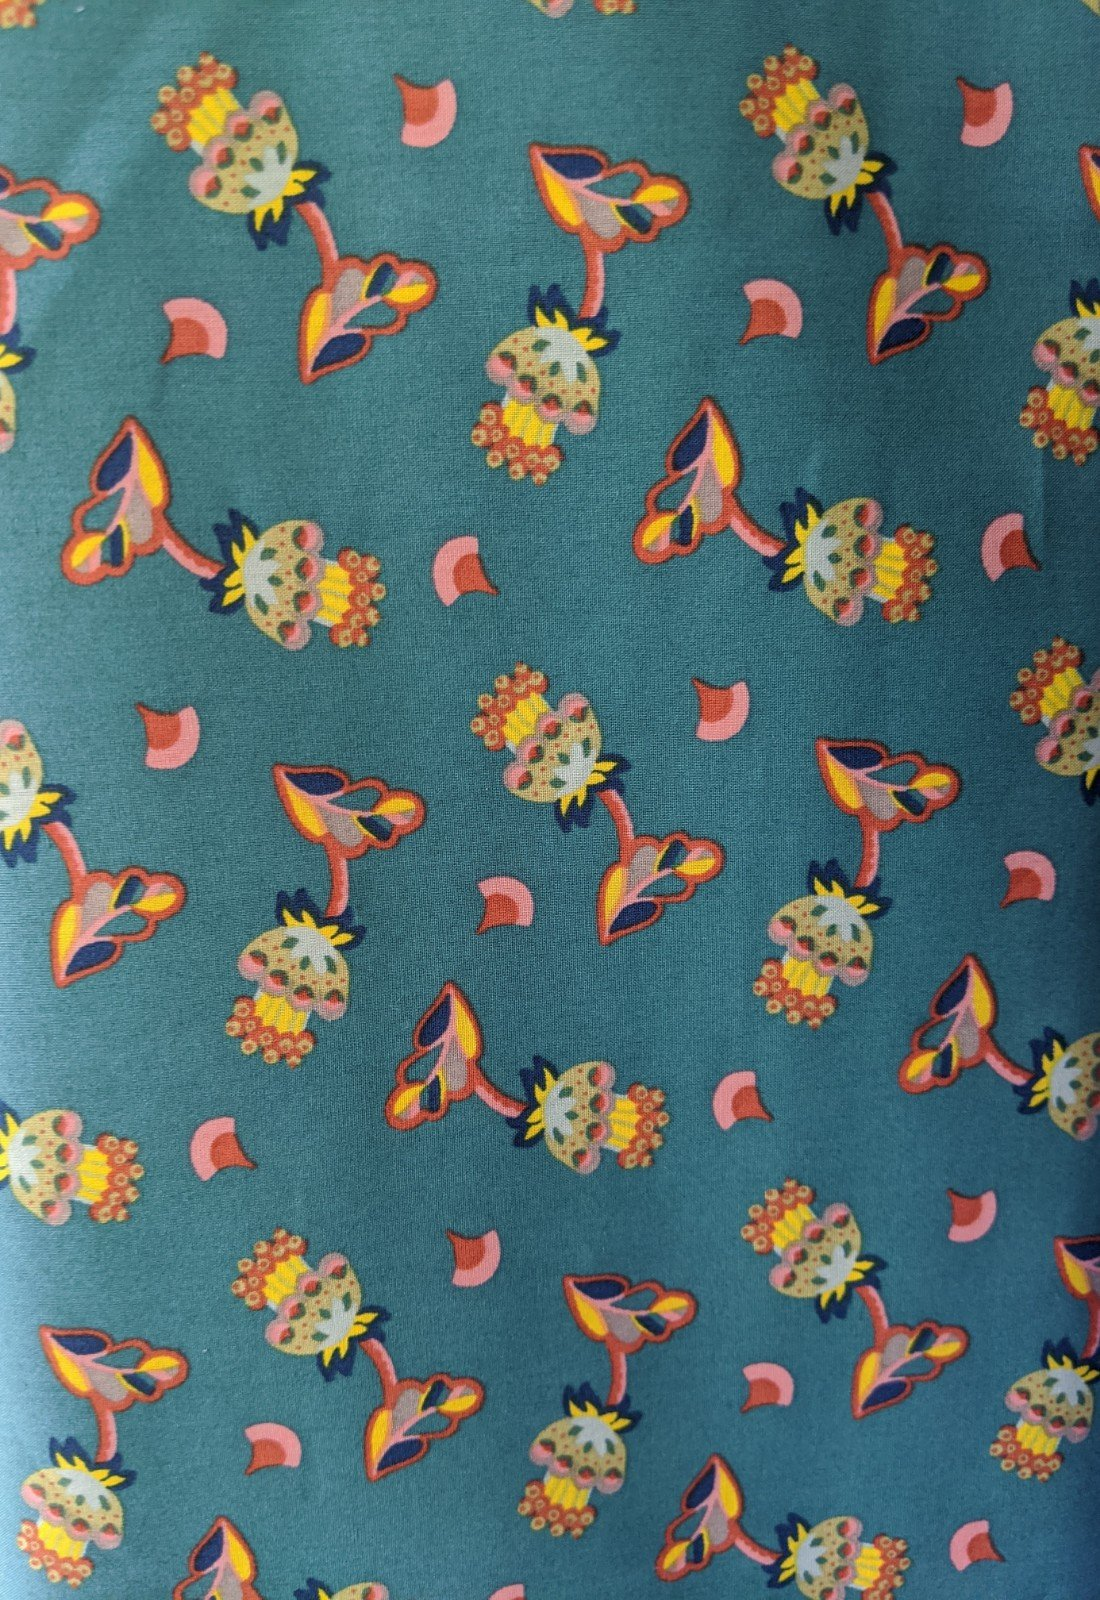 Liberty of London Cotton Lawn - Teal